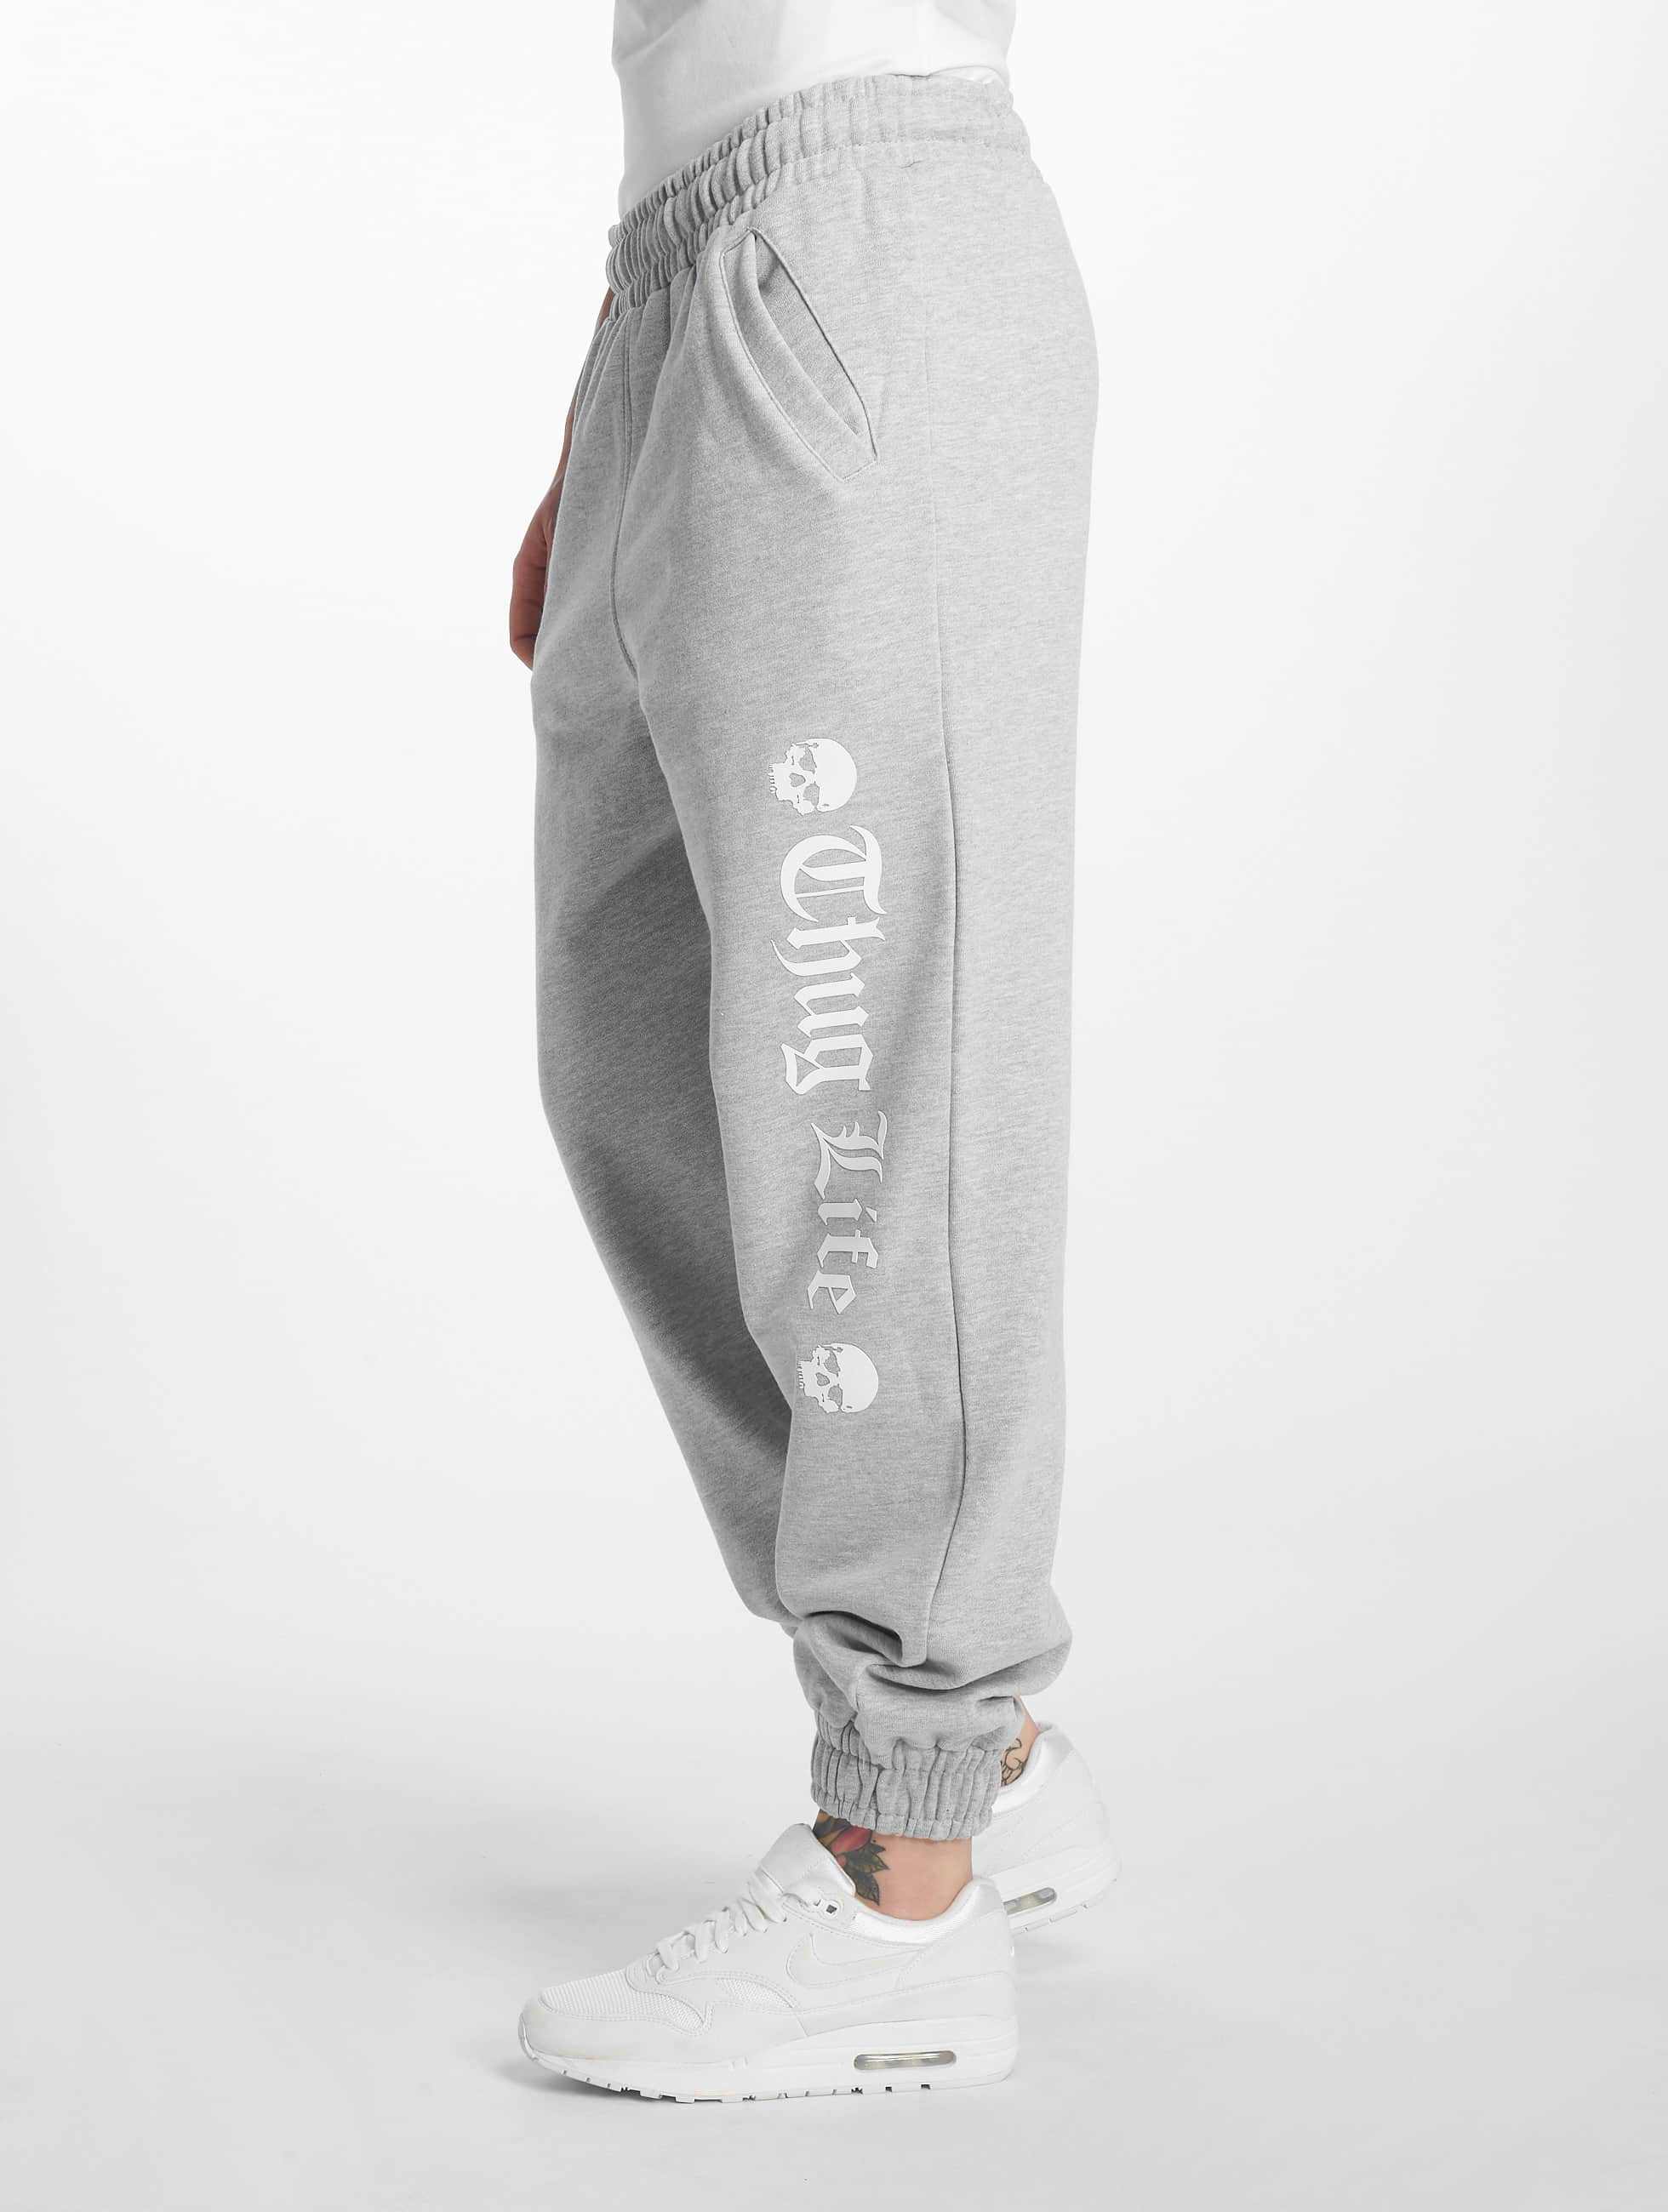 Thug Life / Sweat Pant Grea in grey XL